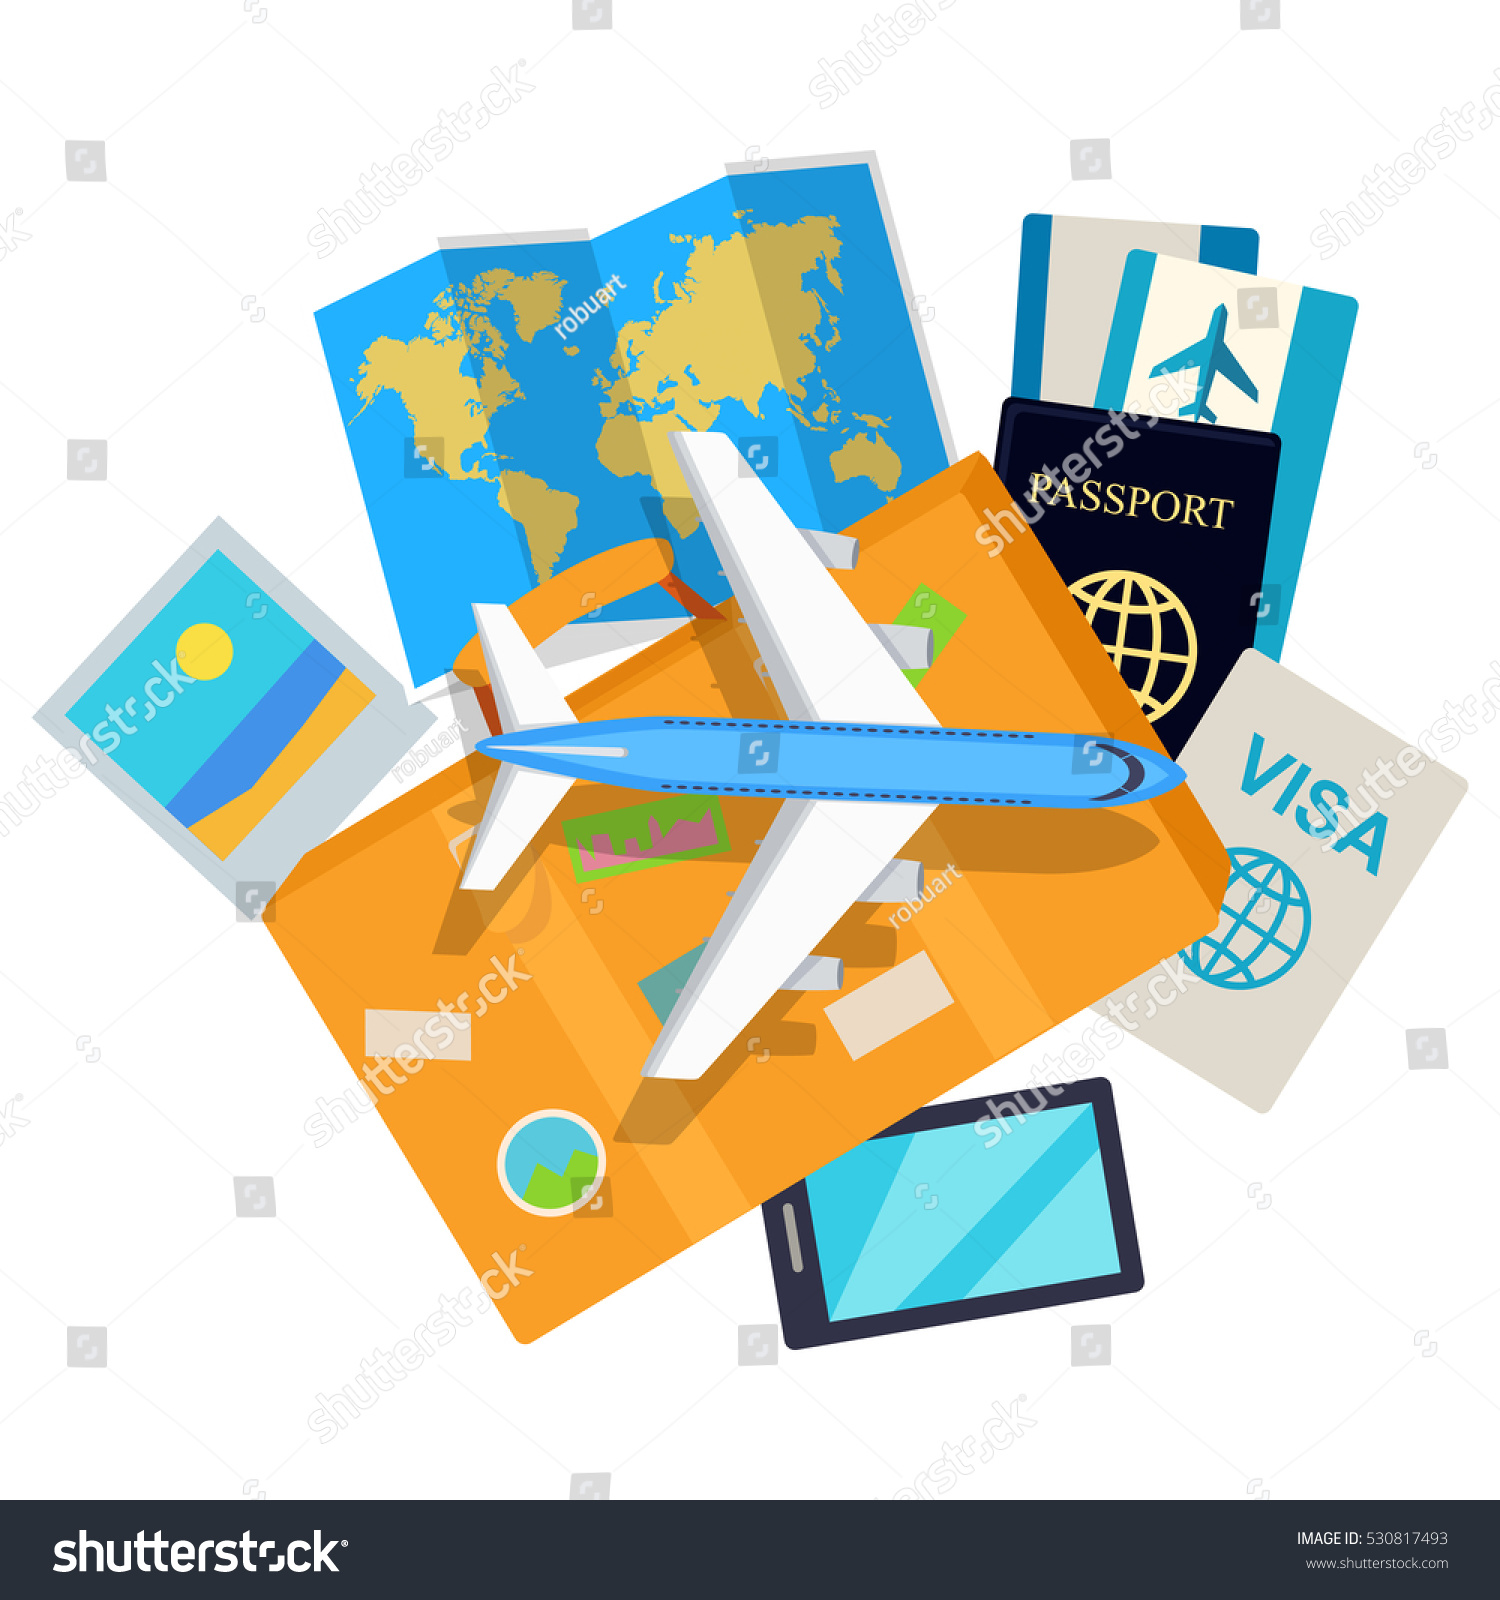 Journey web banner aircraft suitcase luggage vectores en stock aircraft suitcase with luggage world map air tickets gumiabroncs Gallery